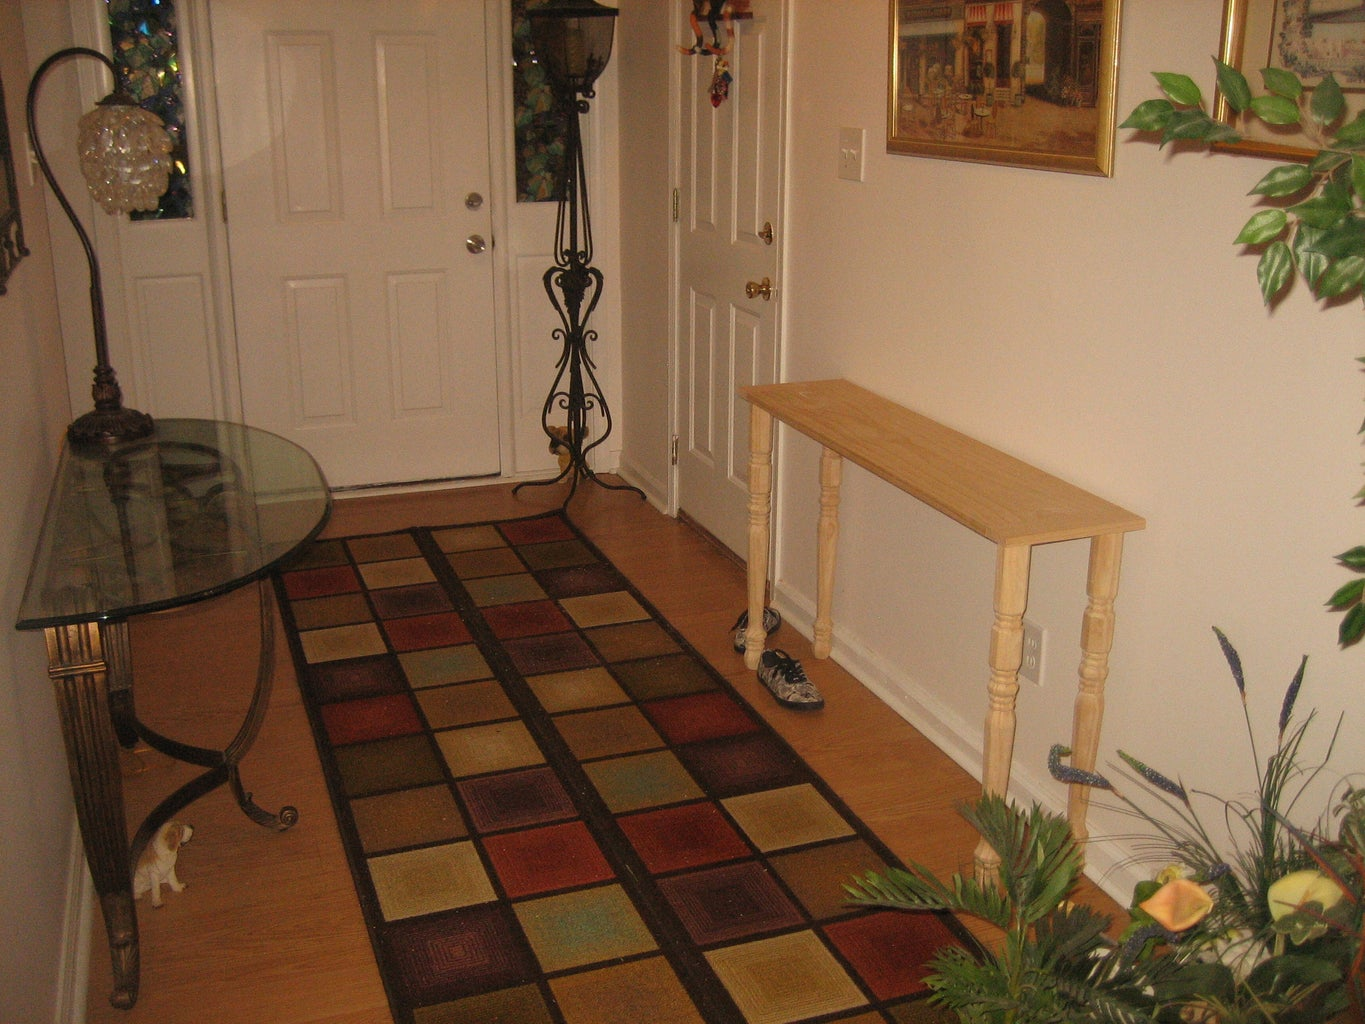 THE CONSOLE TABLE